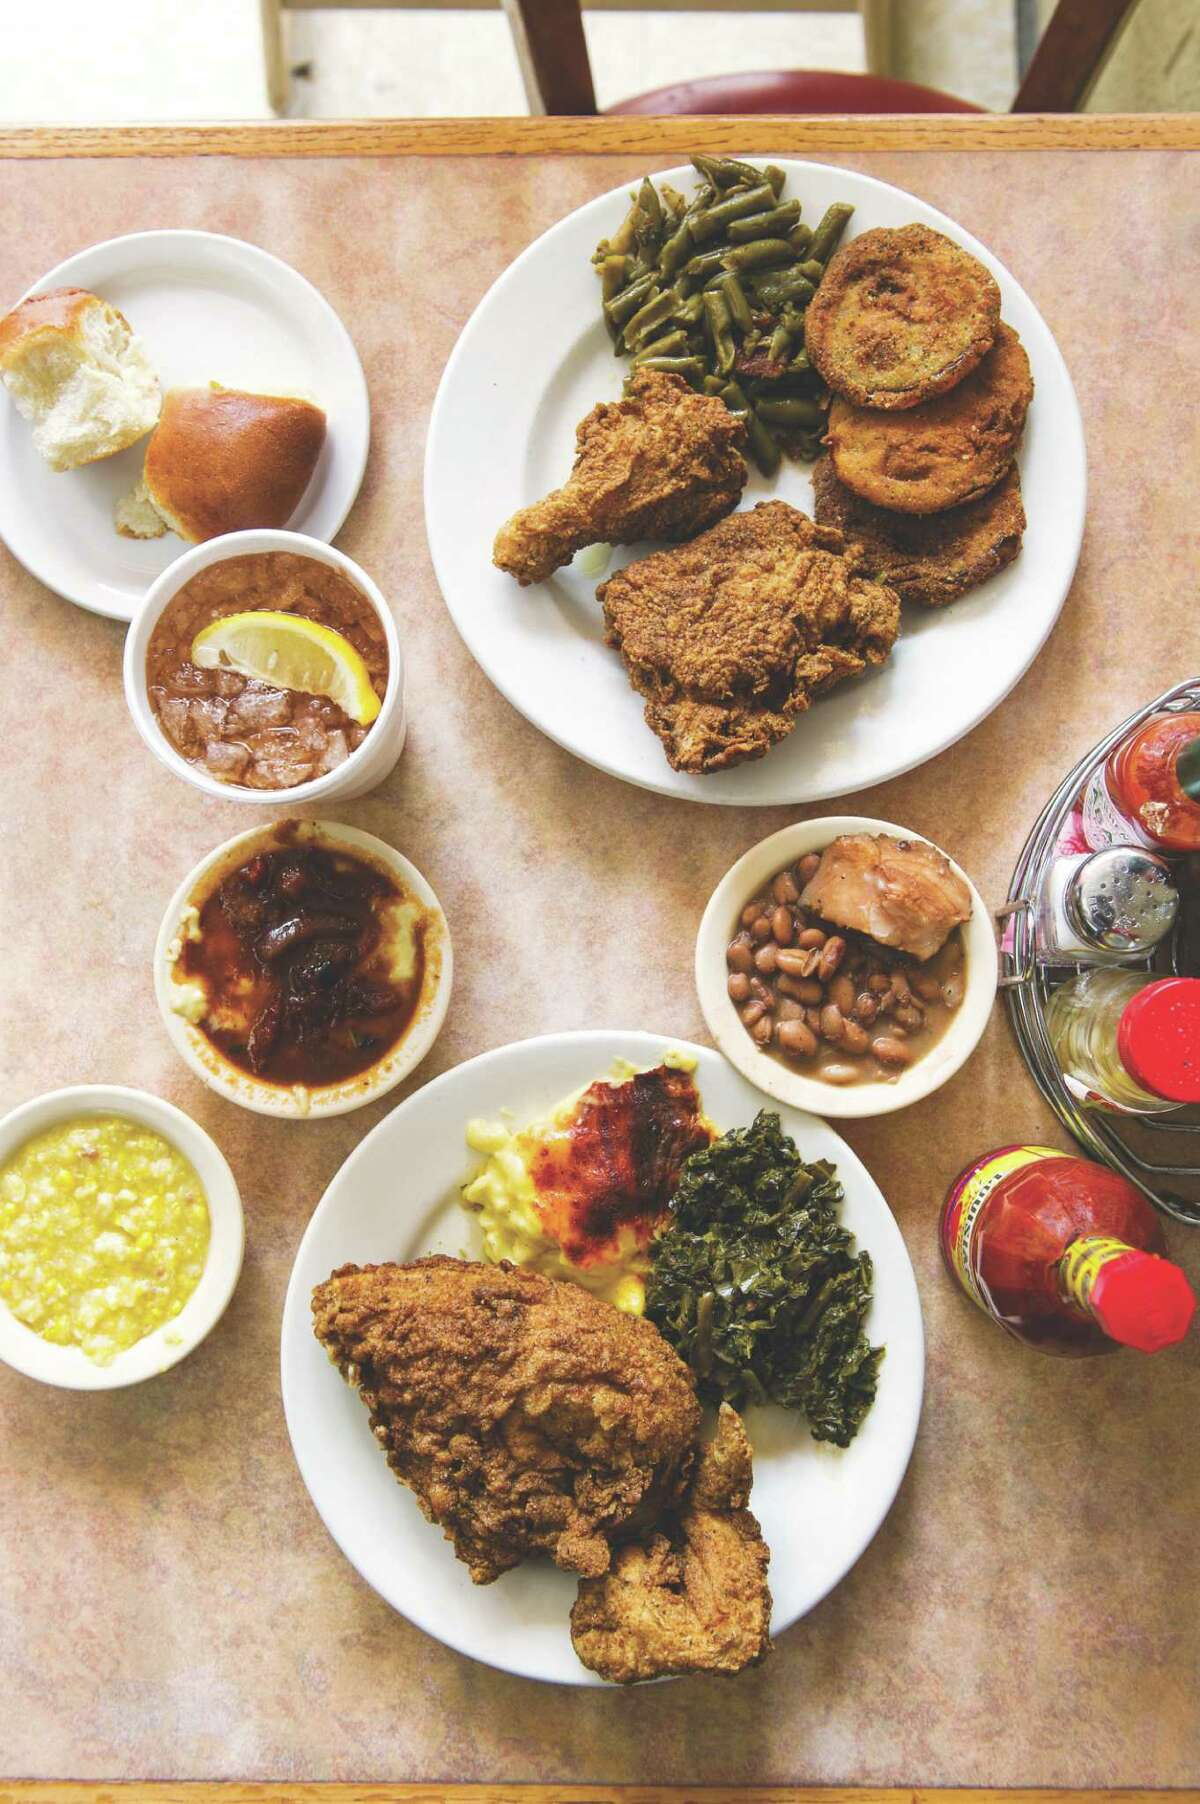 """Arnold's Country Kitchen Fried Chicken from Arnold's Country Chicken in Nashville, Tenn., from """"Fried & True: More Than 50 Recipes for America's Best Fried Chicken and Sides"""" by Lee Brian Schrager with Adeena Sussman (Clarkson Potter)."""